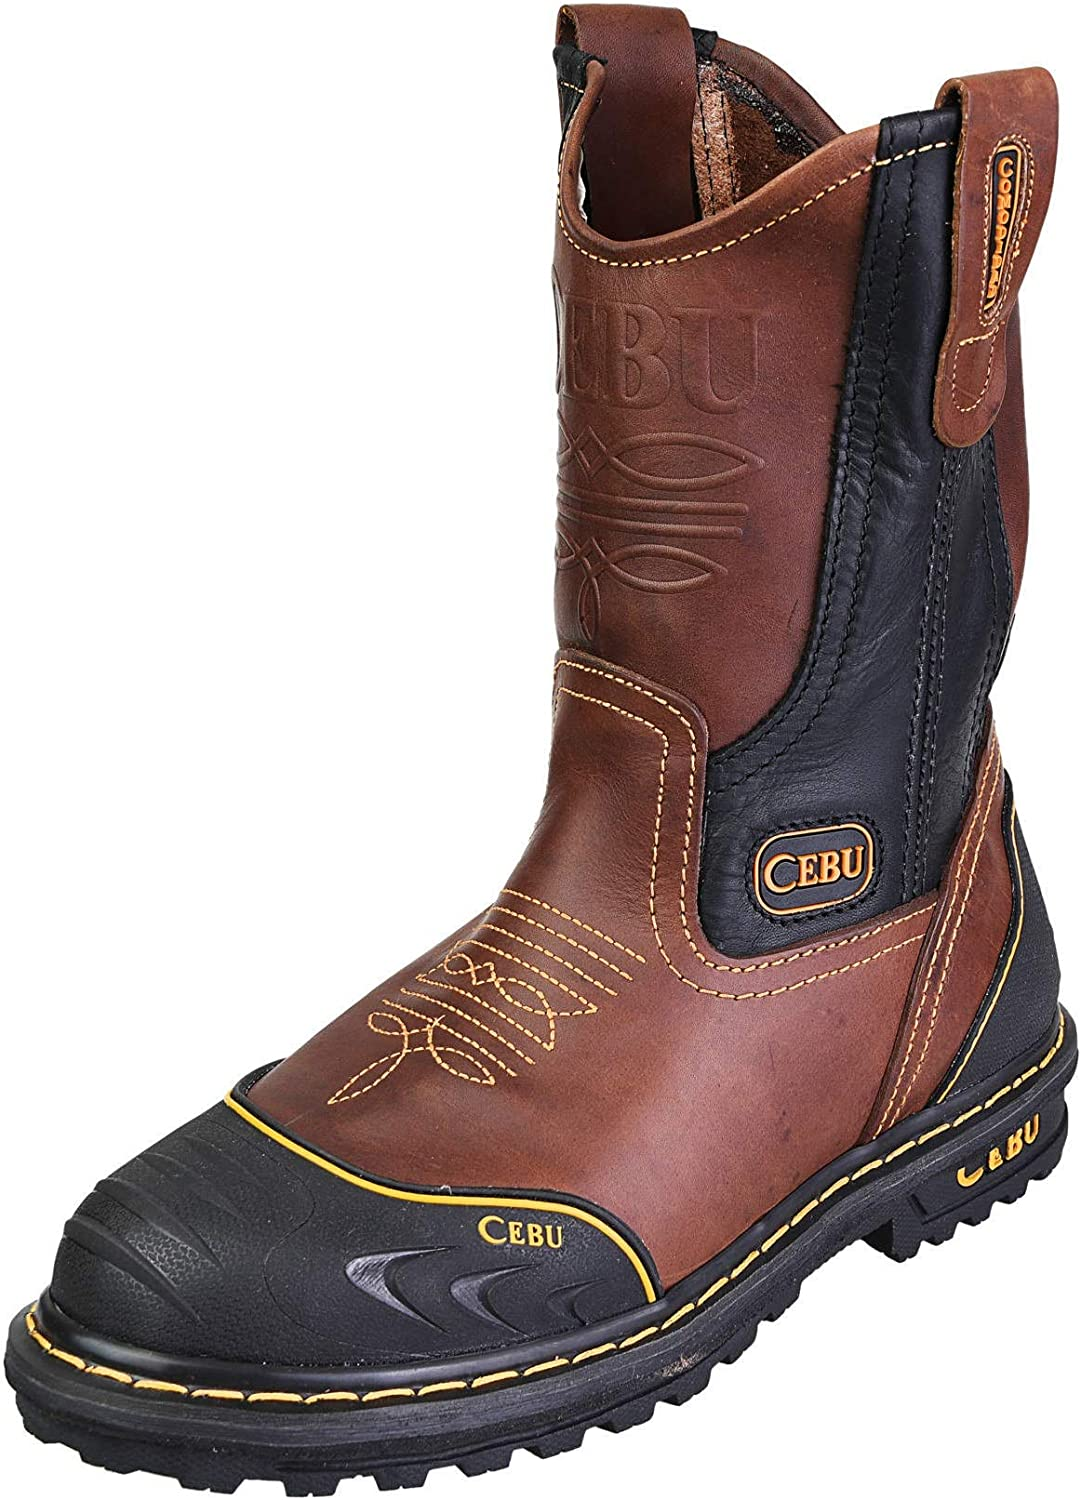 CEBU Men's Soft Toe Work Finally Max 68% OFF resale start Boots Safe Industrial Construction and